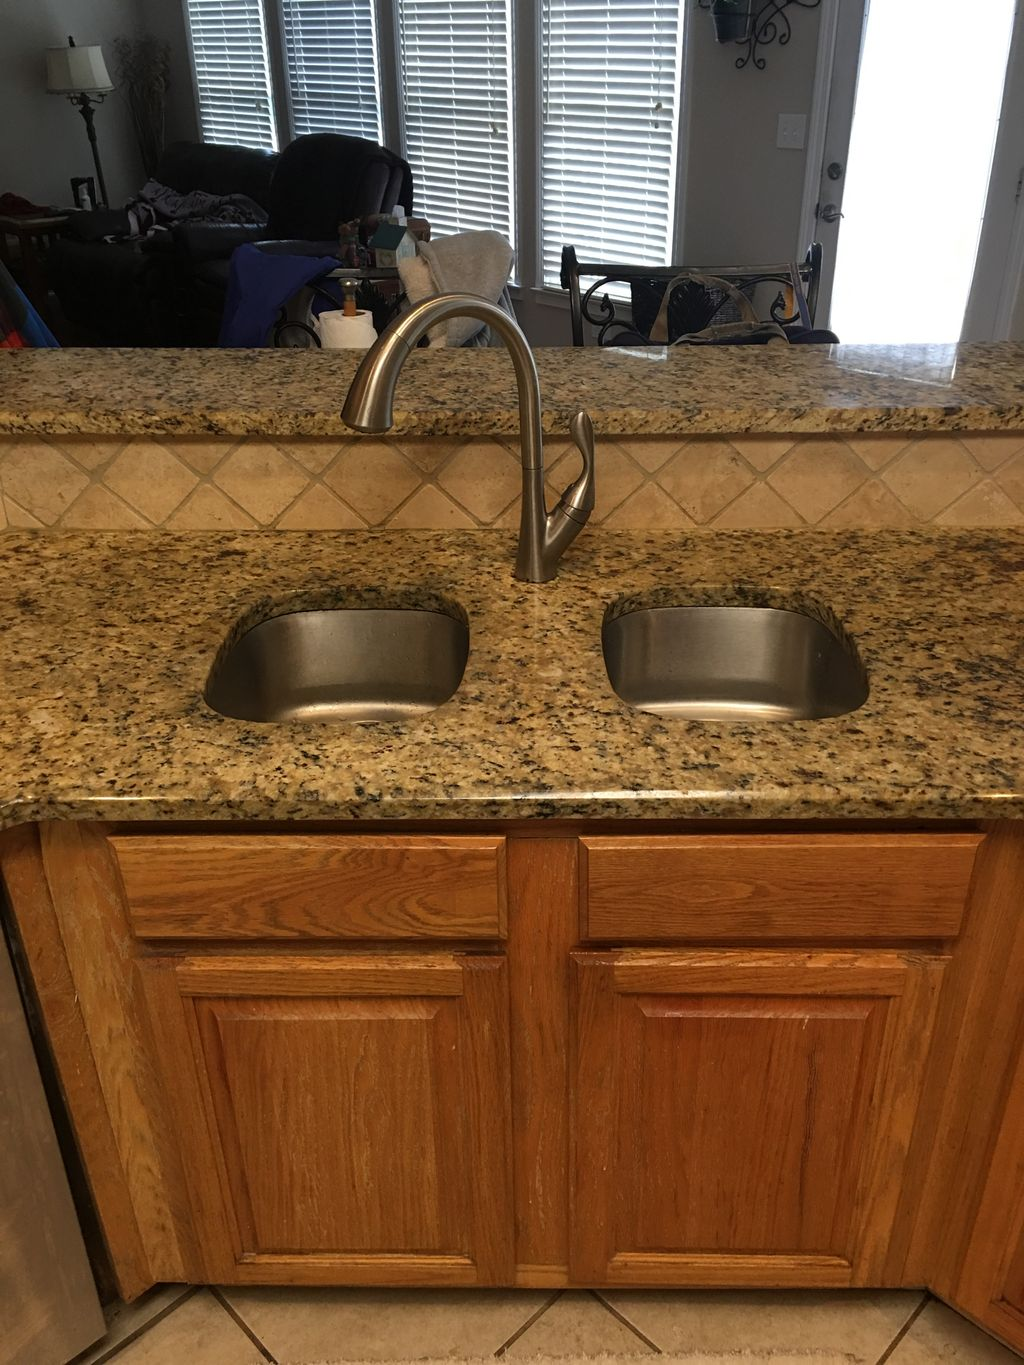 Granite under mount sinks converted to apron front sink